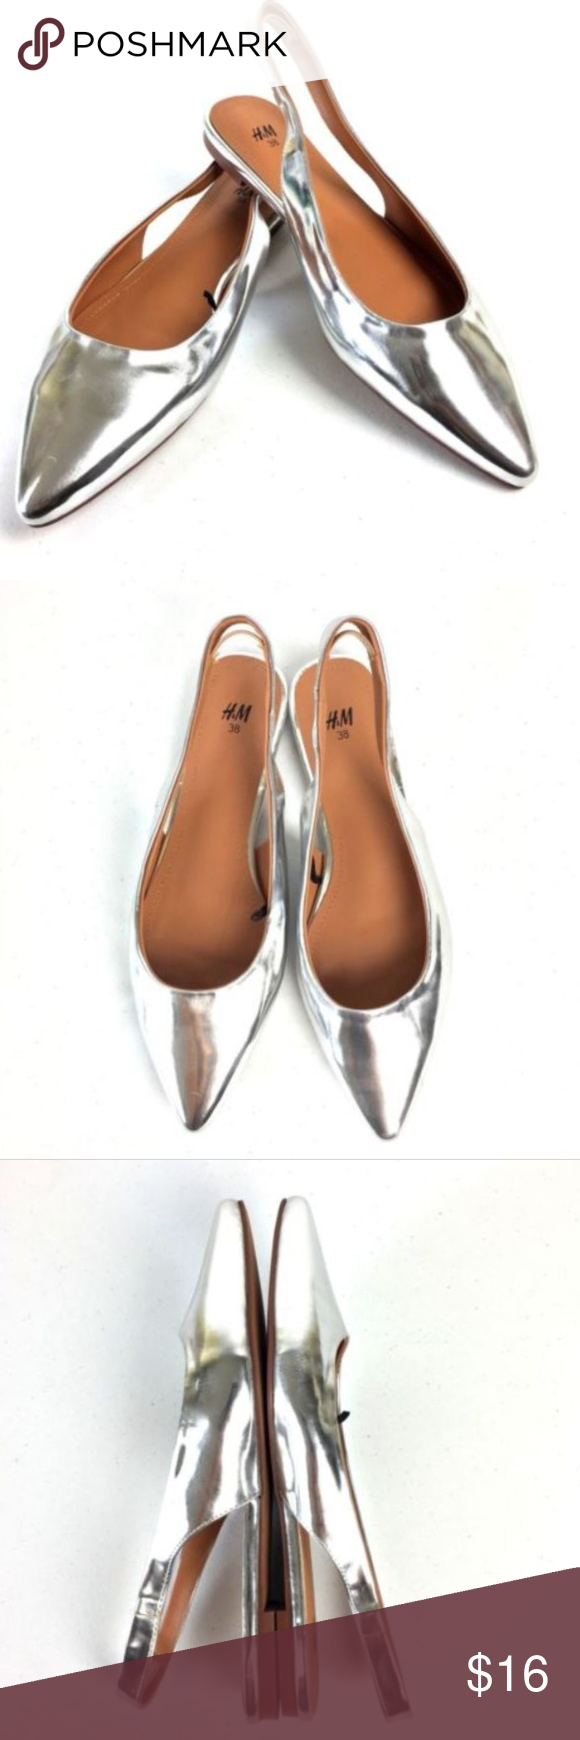 I Just Added This Listing On Poshmark H M Silver Flats Sling Back Pointed Toe Shopmycloset Poshmark Fashion Shopping S Silver Flats On Shoes H M Shoes